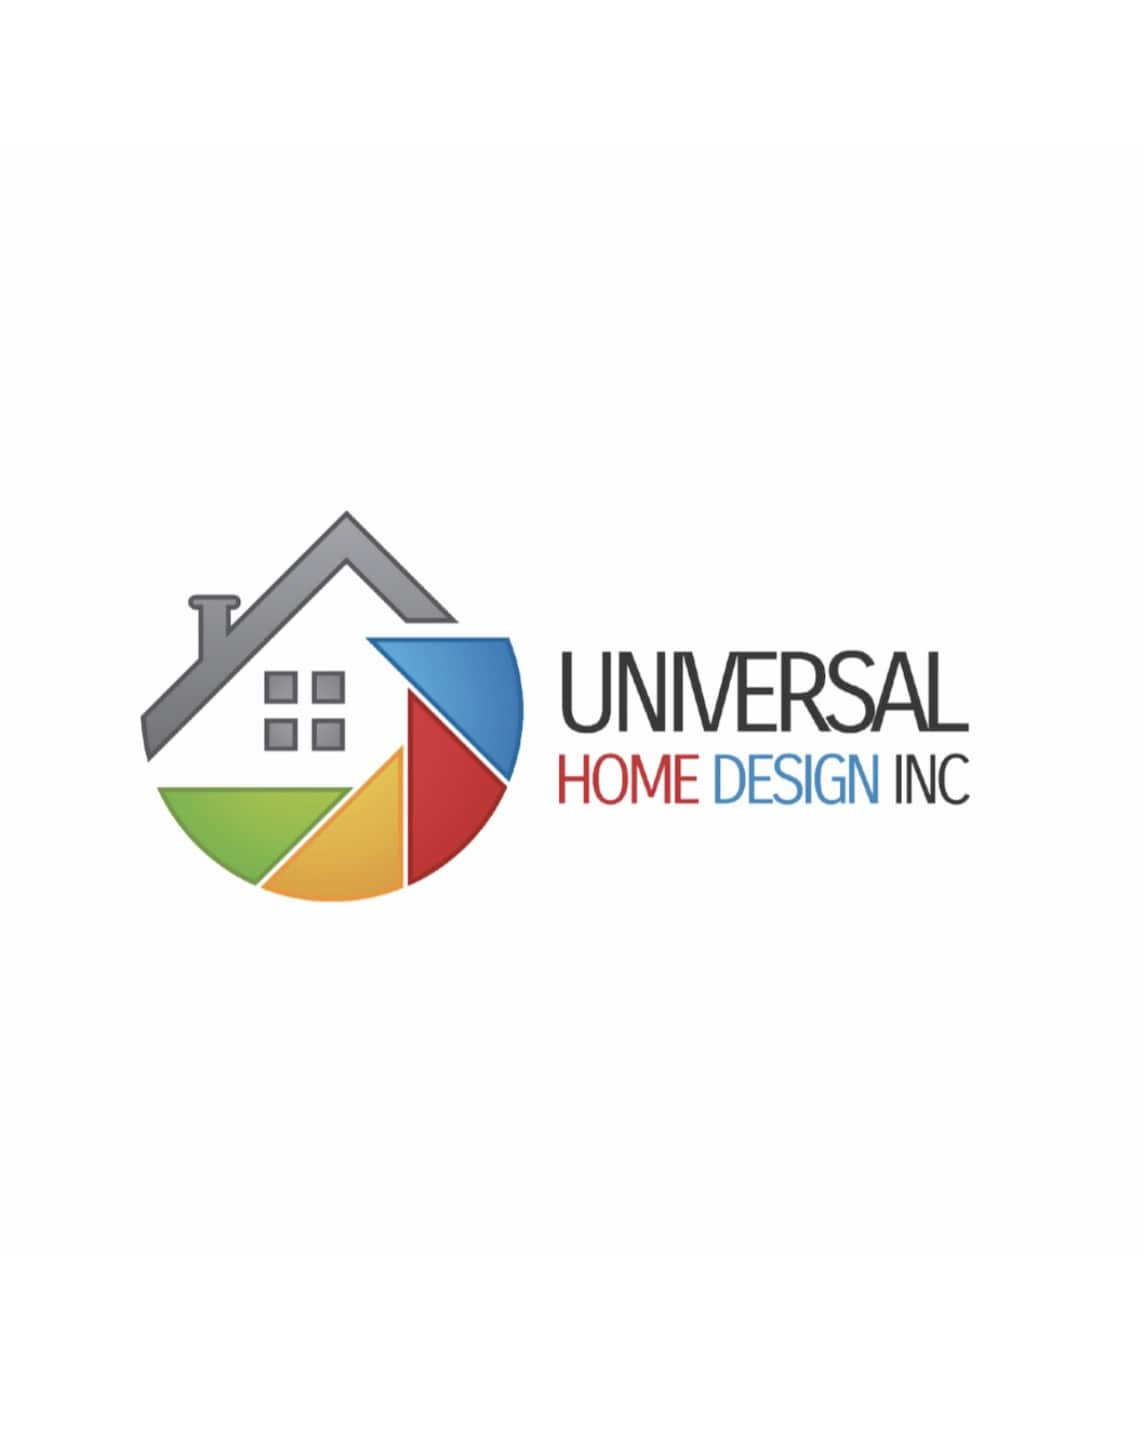 UNIVERSAL HOME DESIGN INC